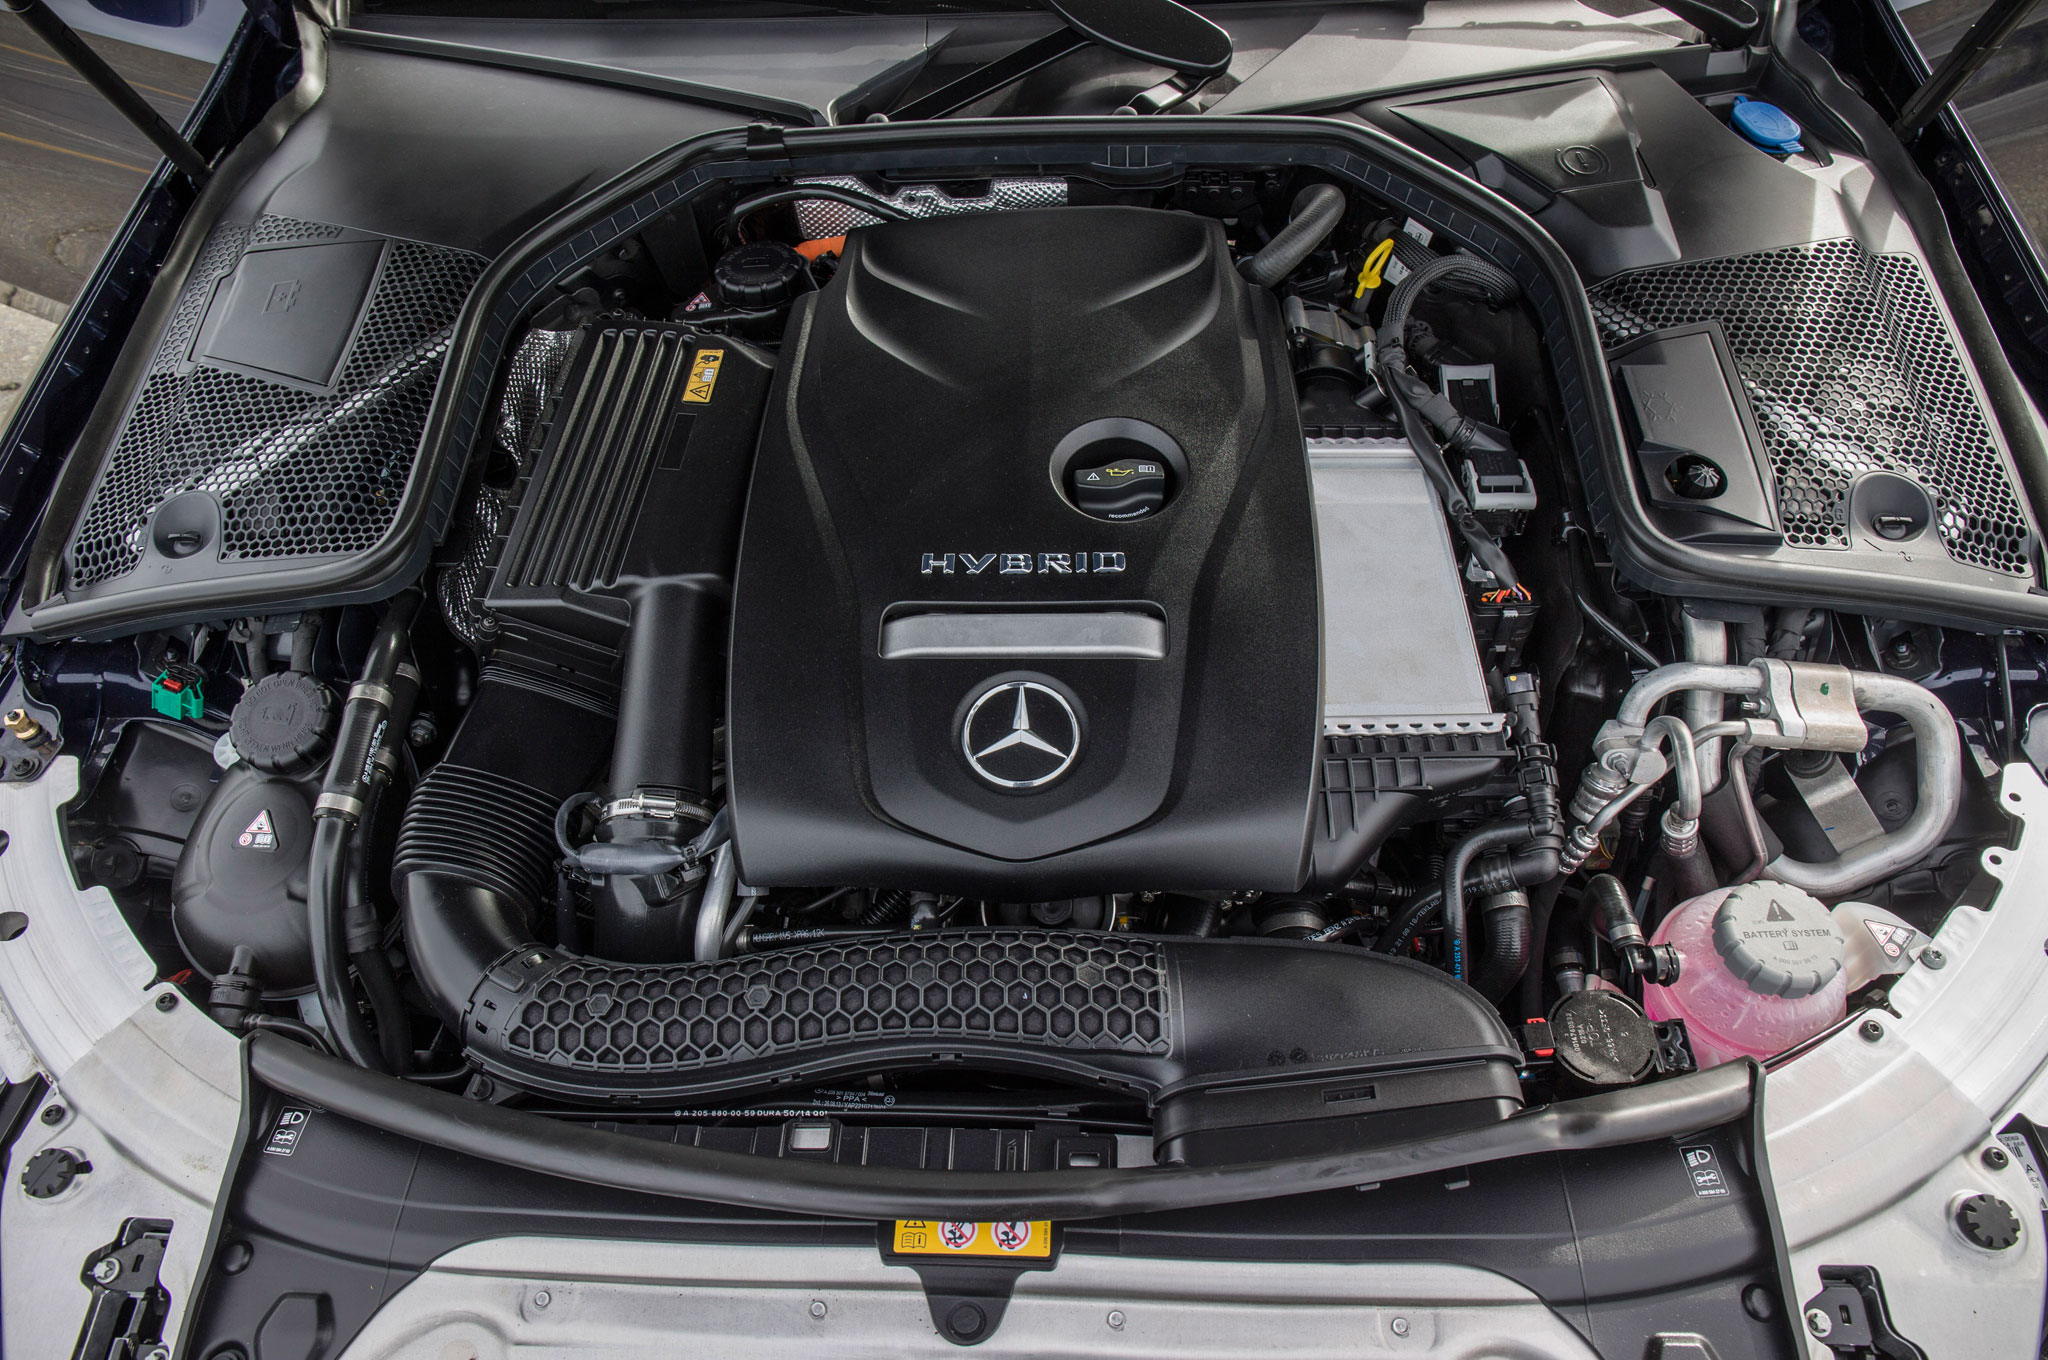 2016 mercedes benz c450 amg 4matic review for Mercedes benz engine